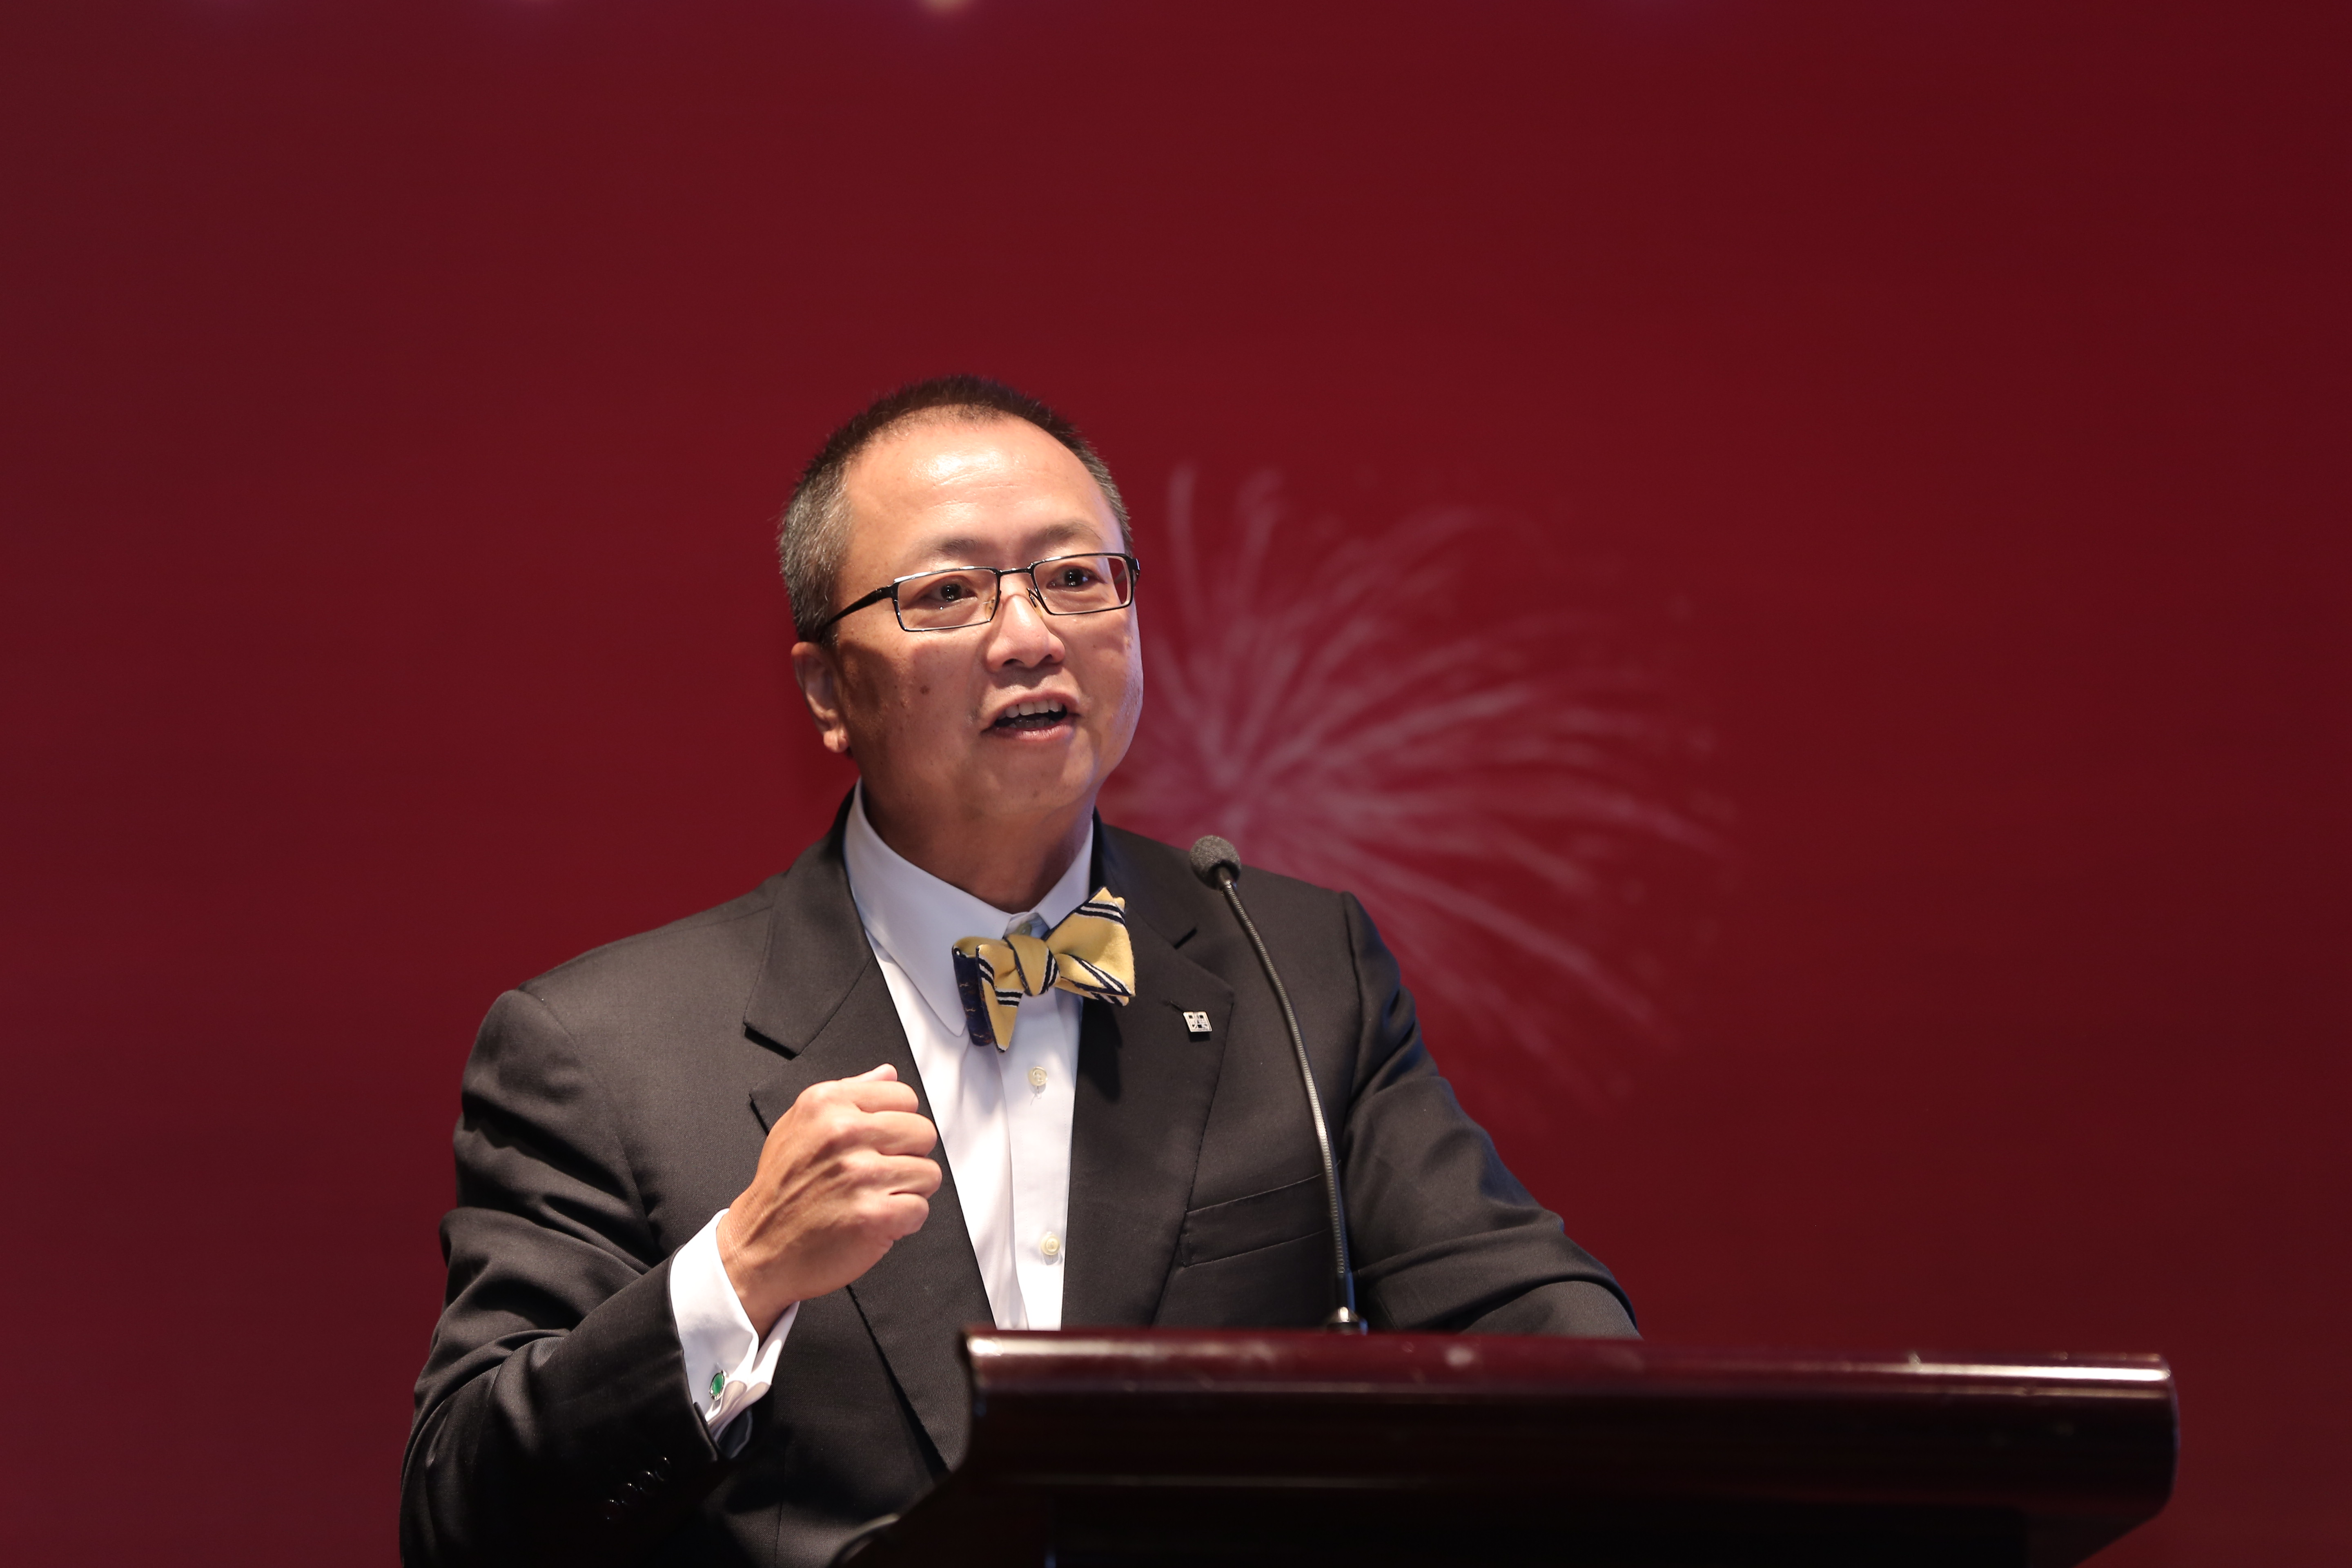 C-100 chairman Clarence Kwan gives keynote remarks on Chinese investment in the U.S.